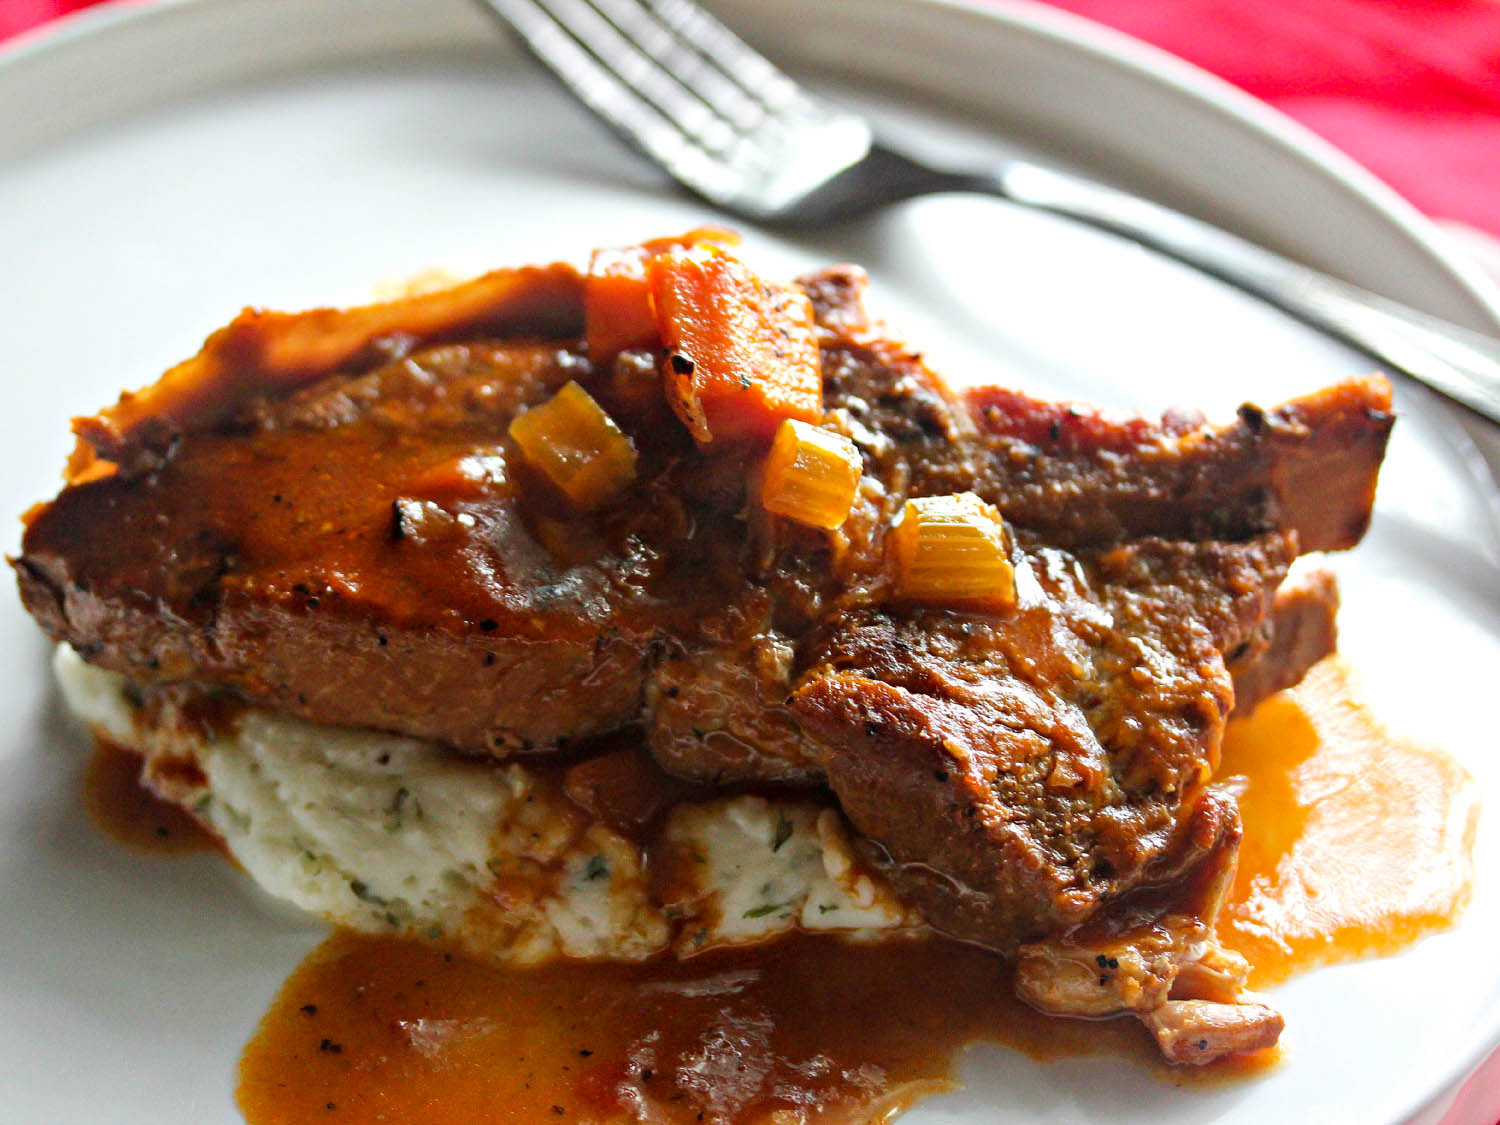 Braised Country Style Pork Ribs  Cider Braised Country Style Pork Ribs With Creamy Mashed